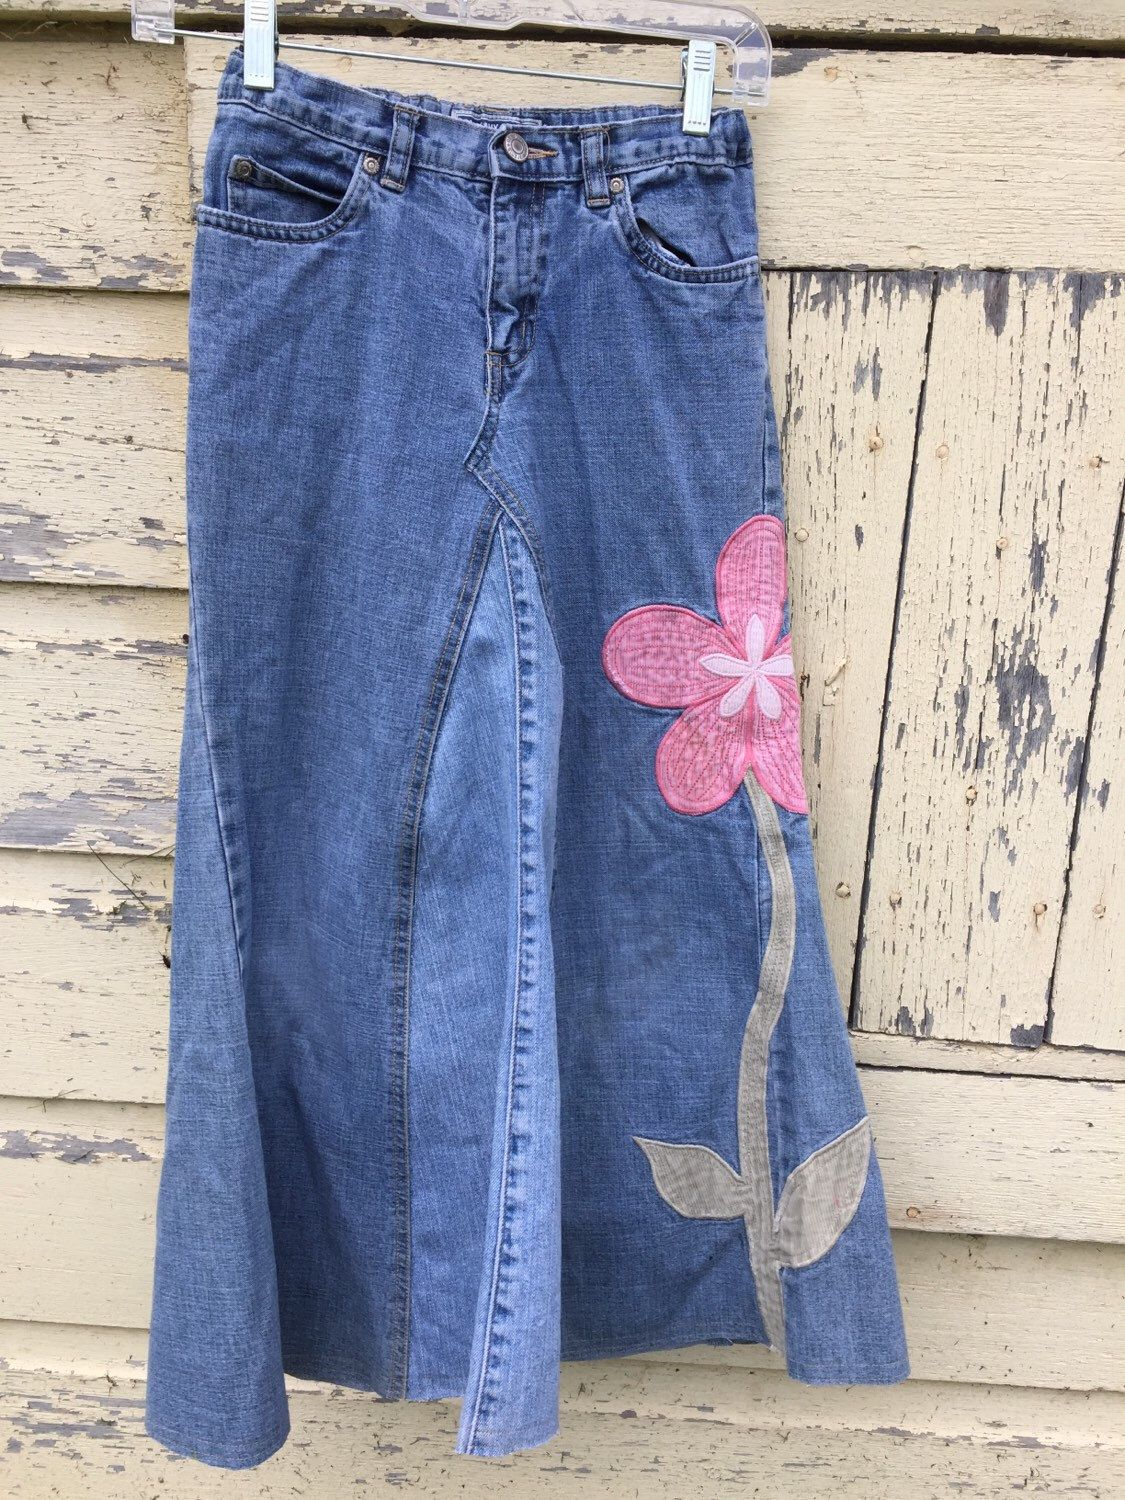 355319f233 Pin by Ruth - Skirted Blues on Skirted Blues Shop | Denim skirt, Skirts,  Denim